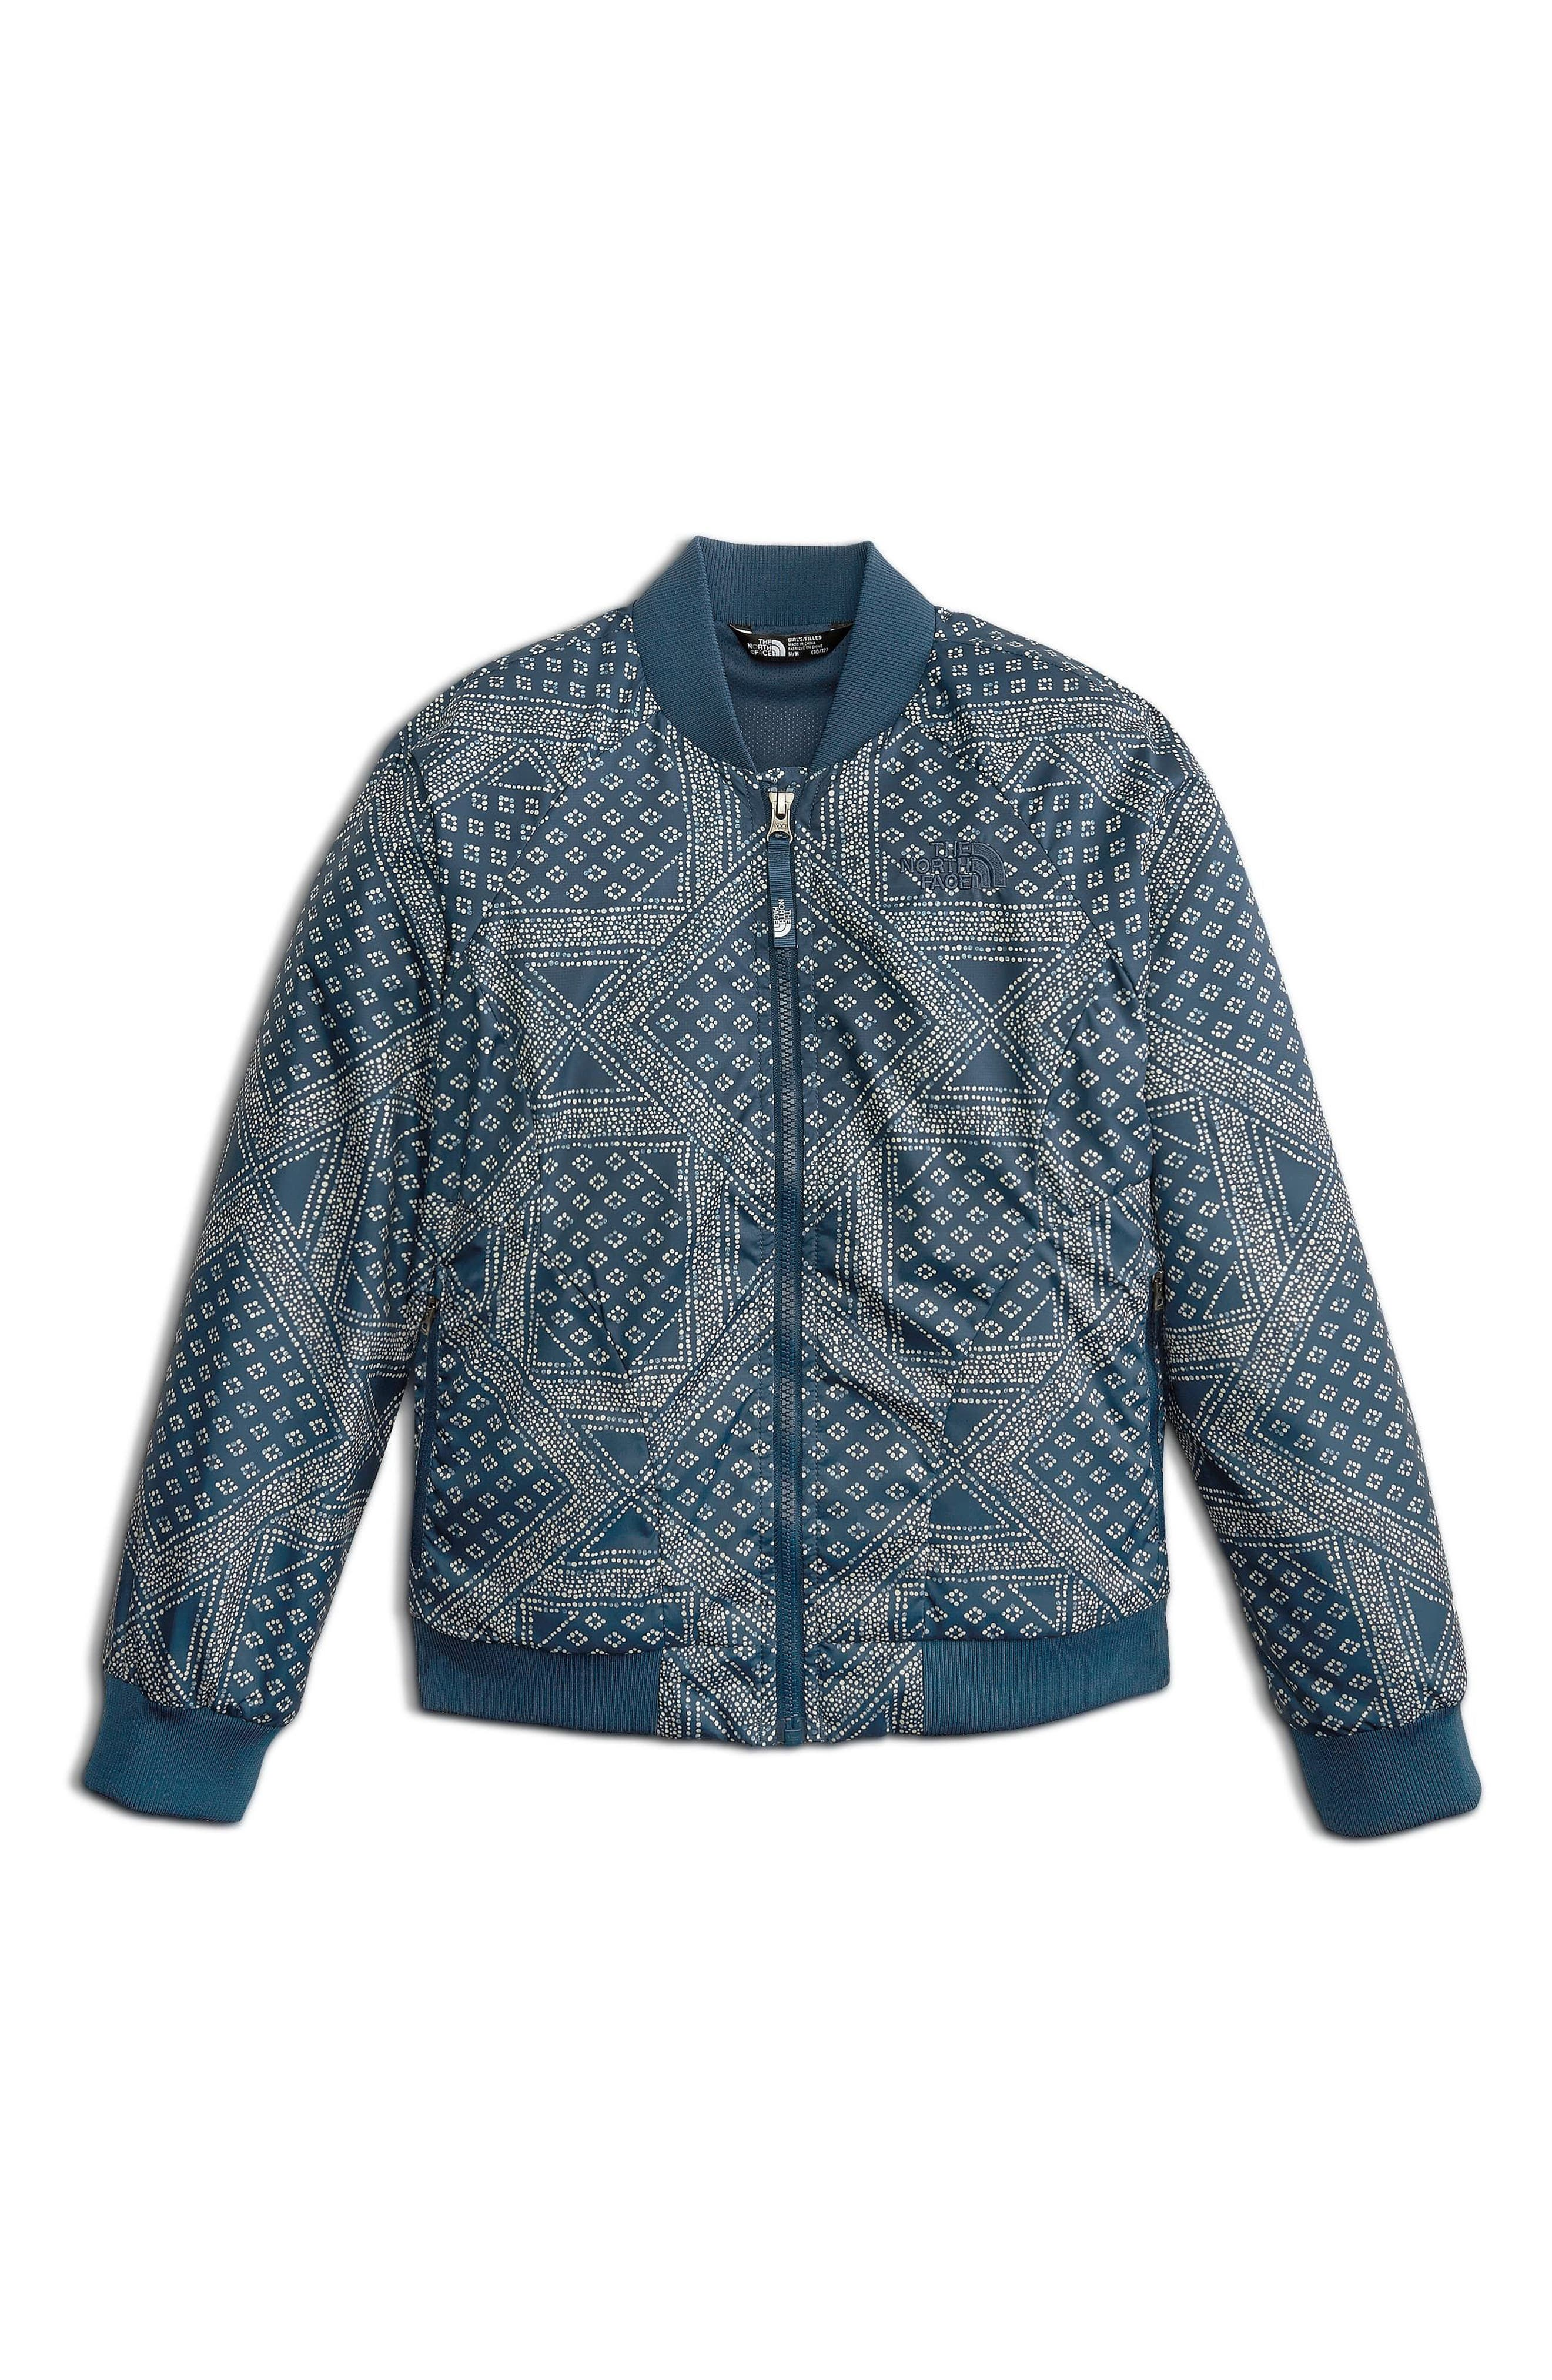 Flurry Wind Bomber Jacket,                         Main,                         color, Blue Wing Teal Bandana Print